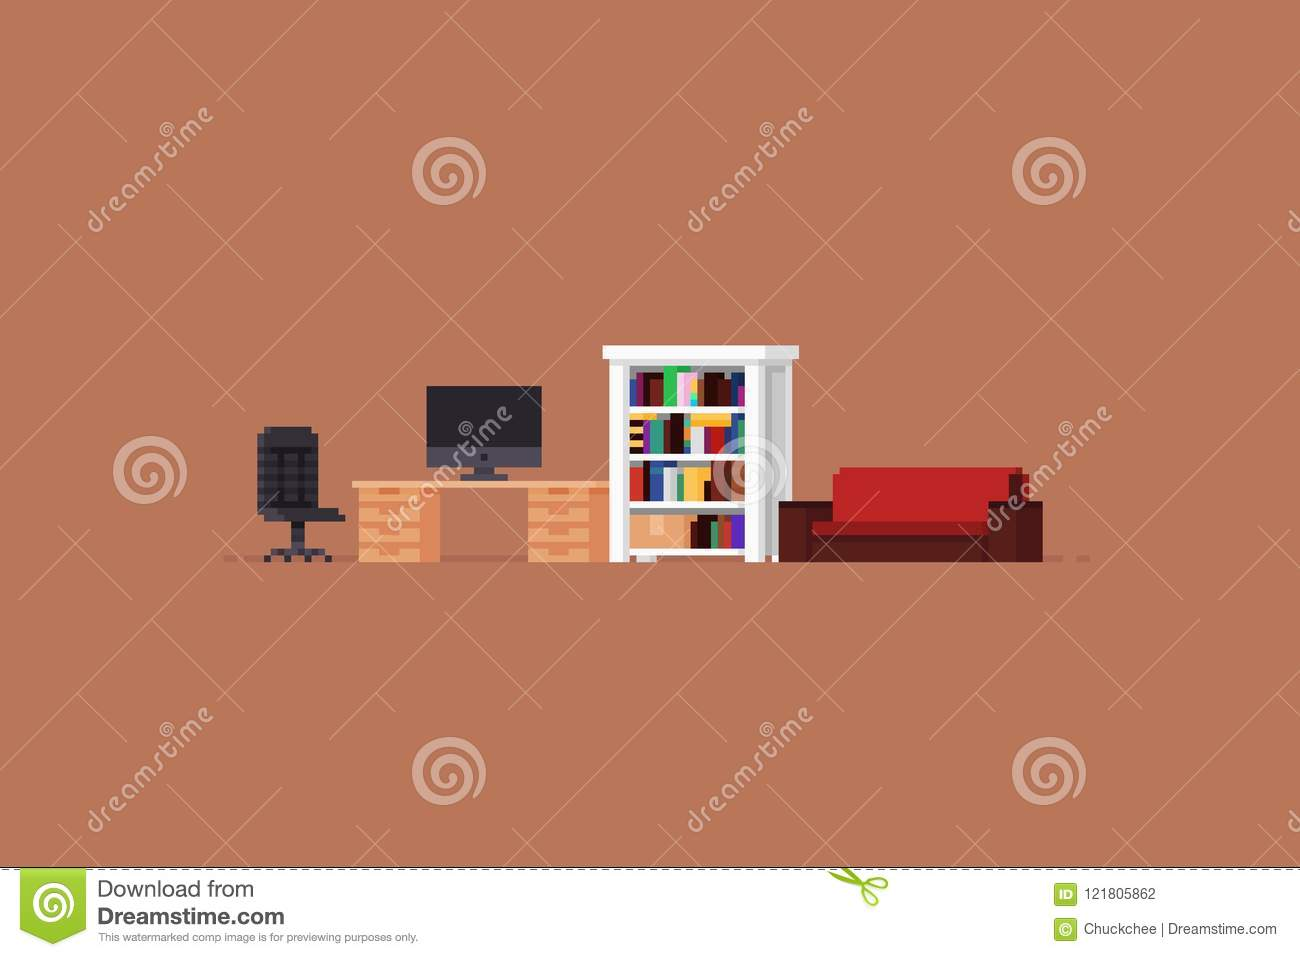 Pixel Art Room Stock Vector Illustration Of 8bit Modern